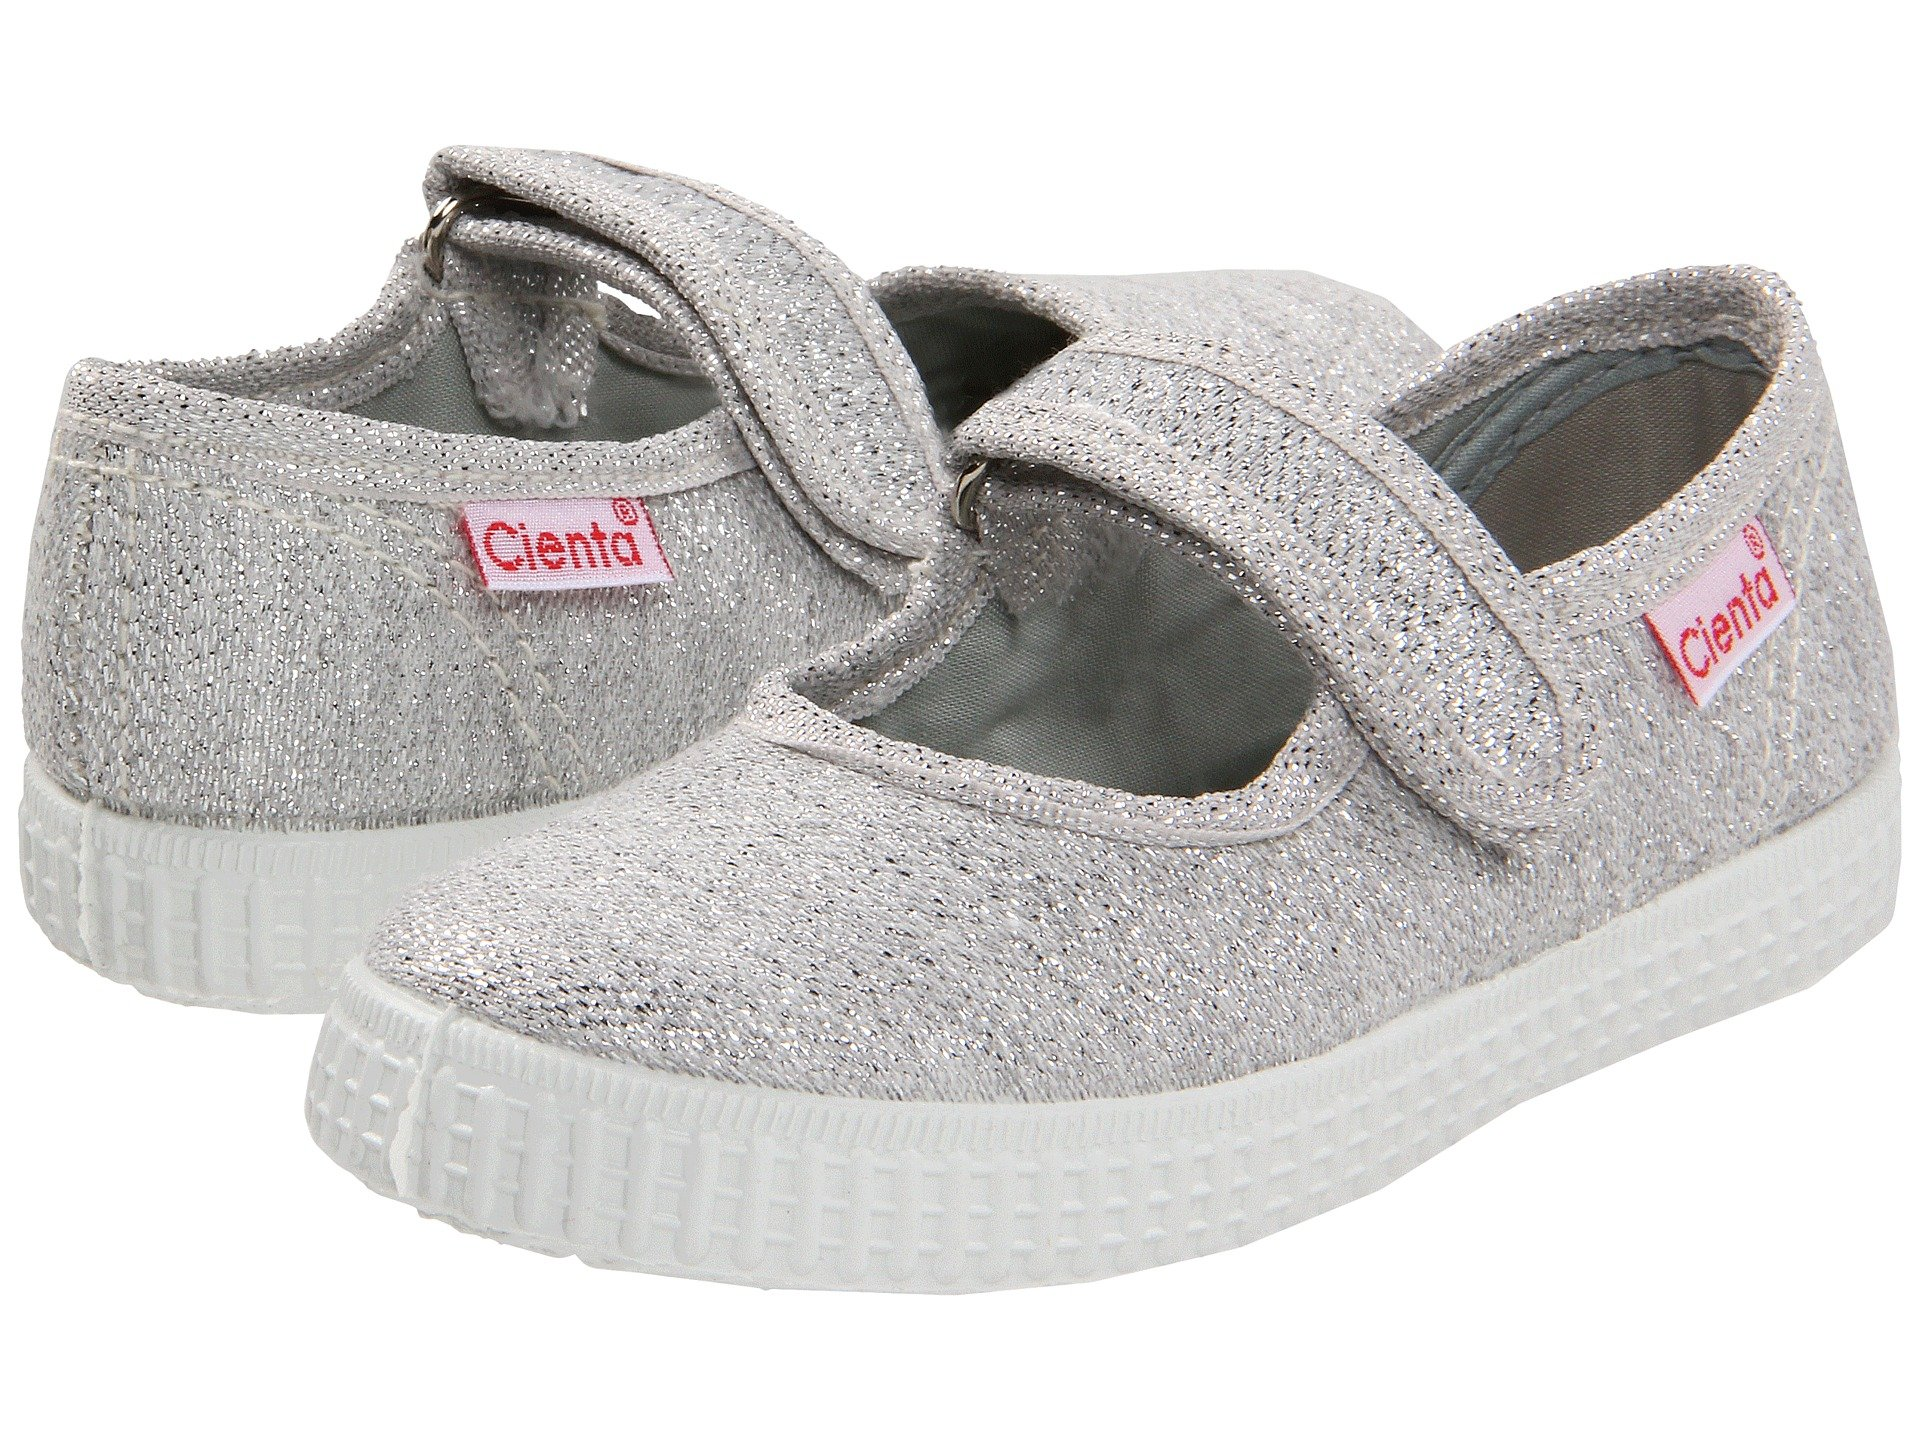 Best Kids Shoes For The Season: - Coco in Cashmere